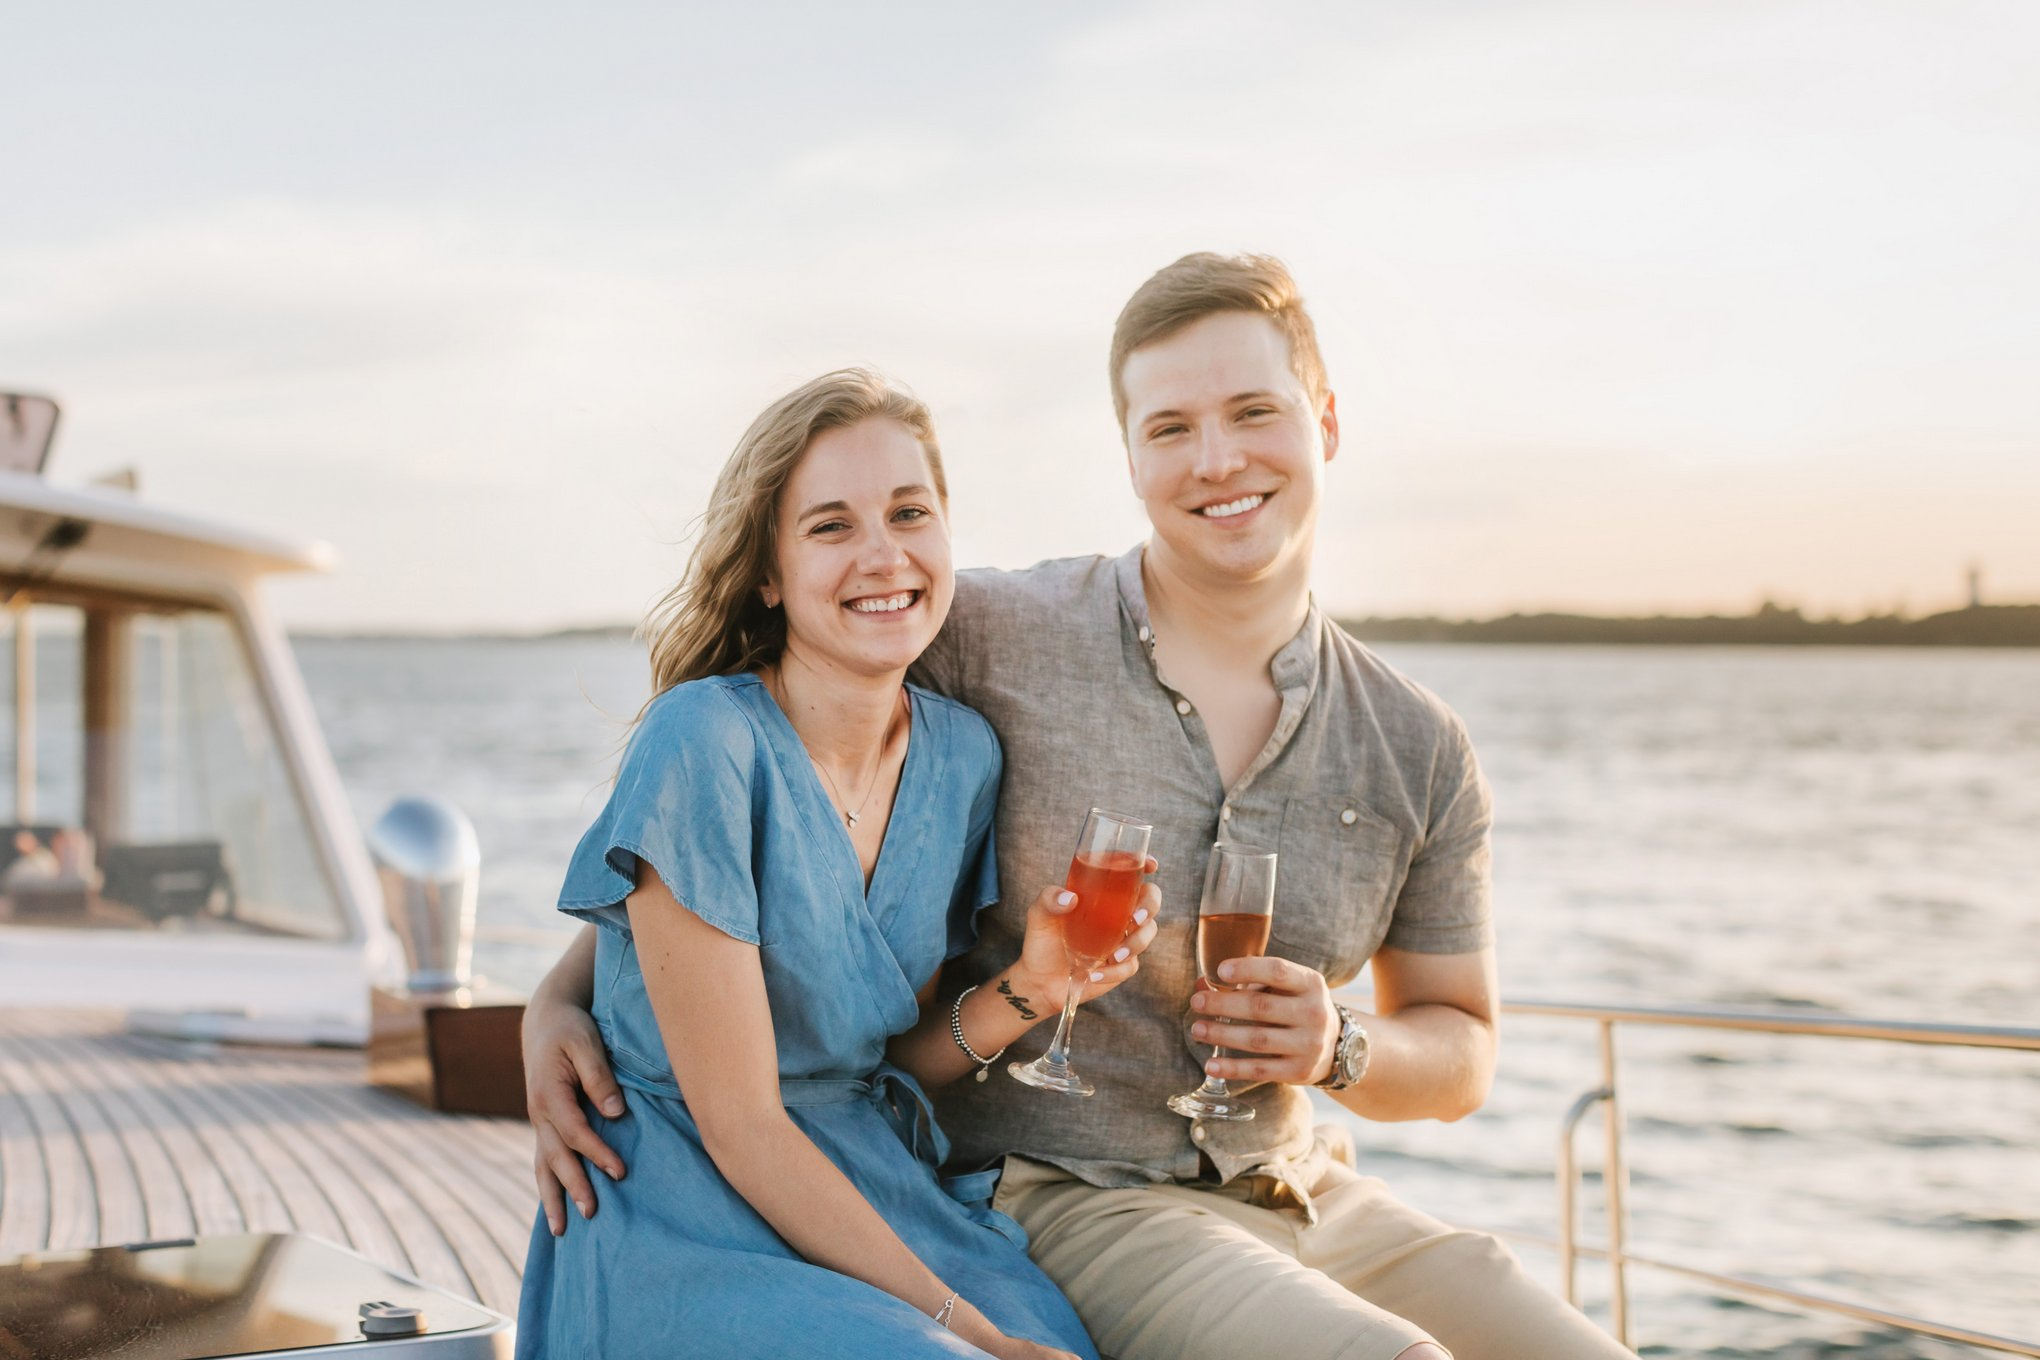 Yacht-Proposal-Boat-Boston-Harbor-Engagement-Beach-Lena-Mirisola-10.JPG